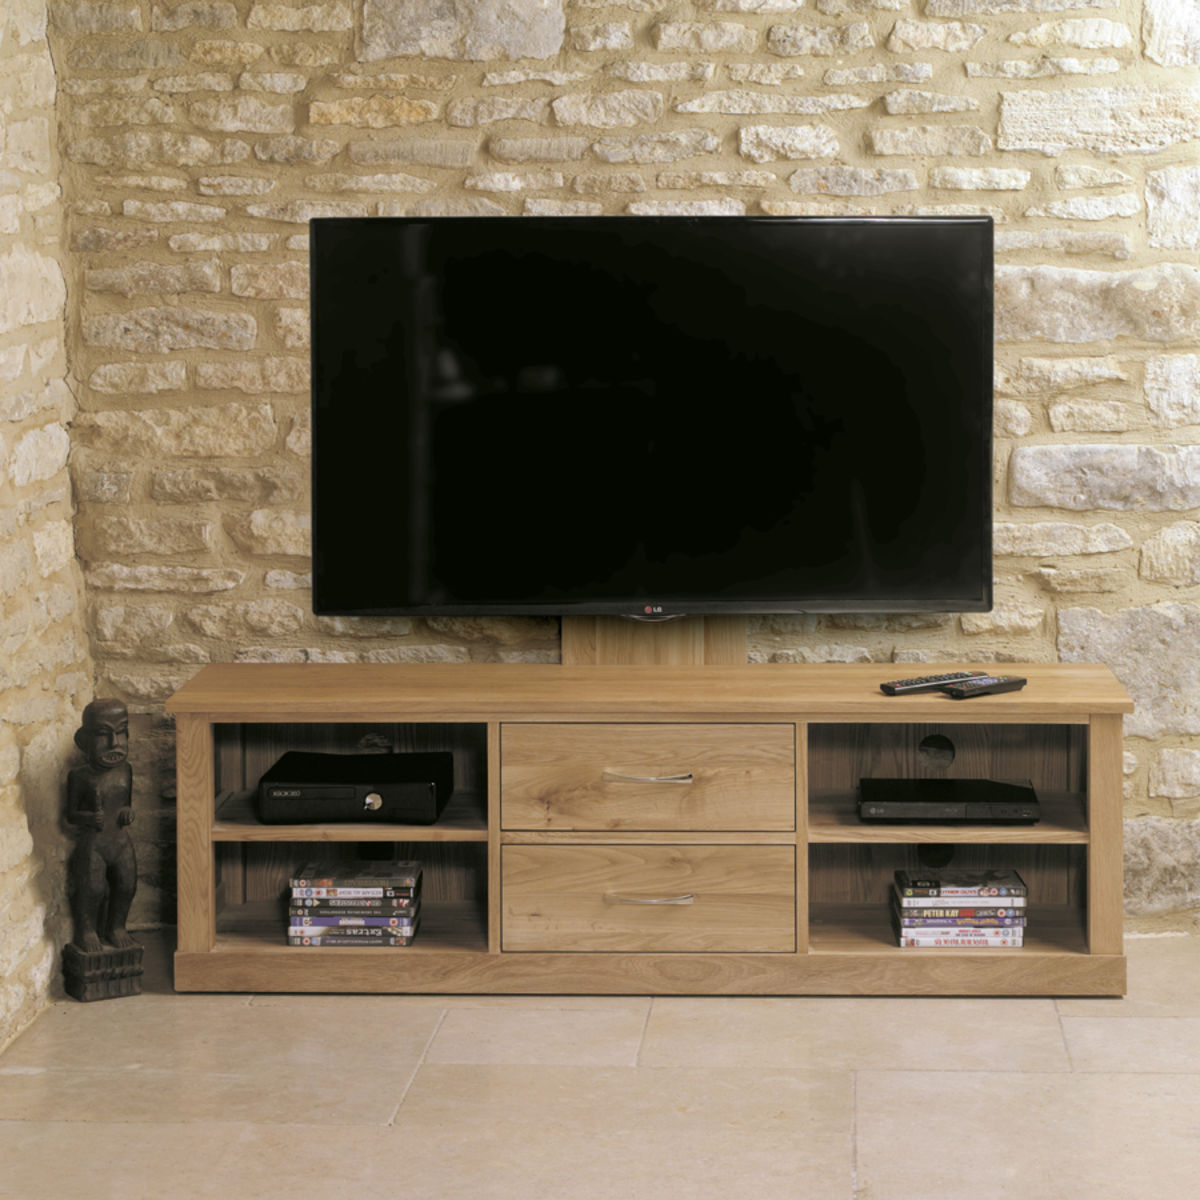 5 tips to help you choose the perfect TV cabinet